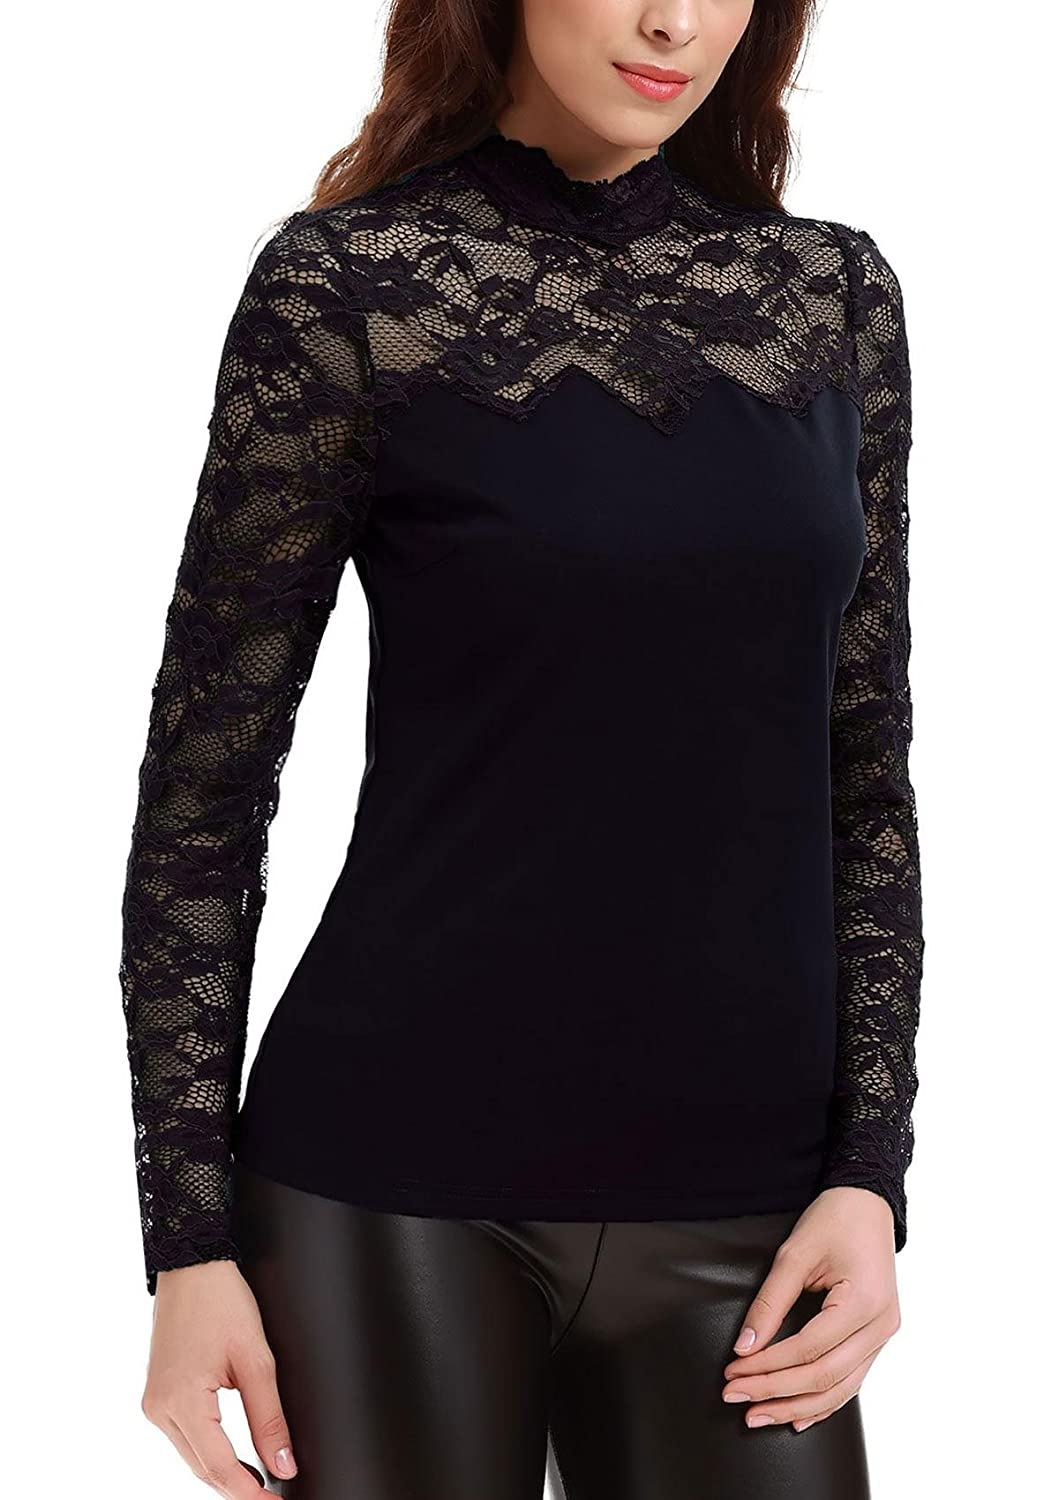 Yulee Women's Turtleneck Long Sleeve Lace Insert Blouse Pullover Top Shirt:  Amazon.co.uk: Clothing